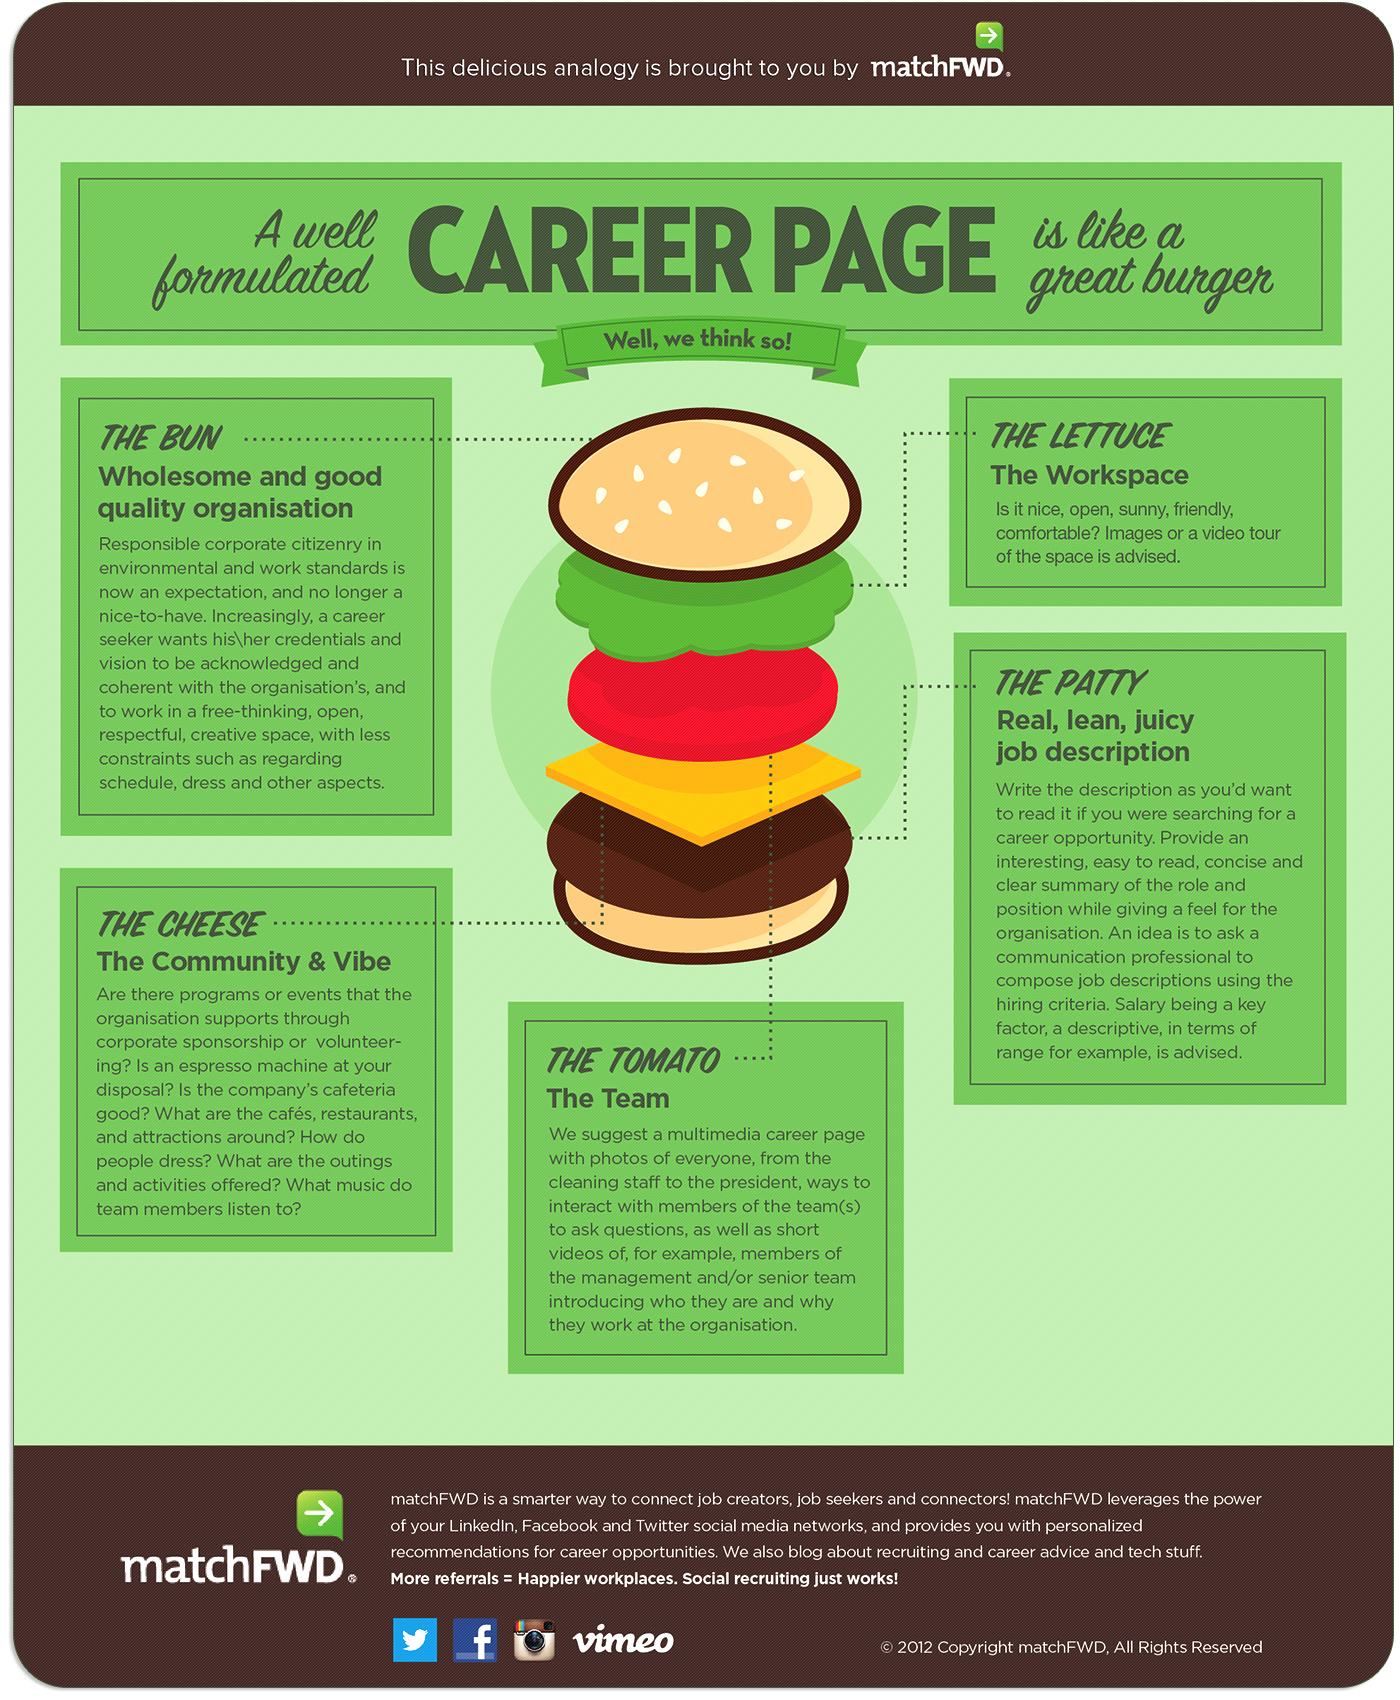 A Well Formulated Career Page Is Like A Great Burger